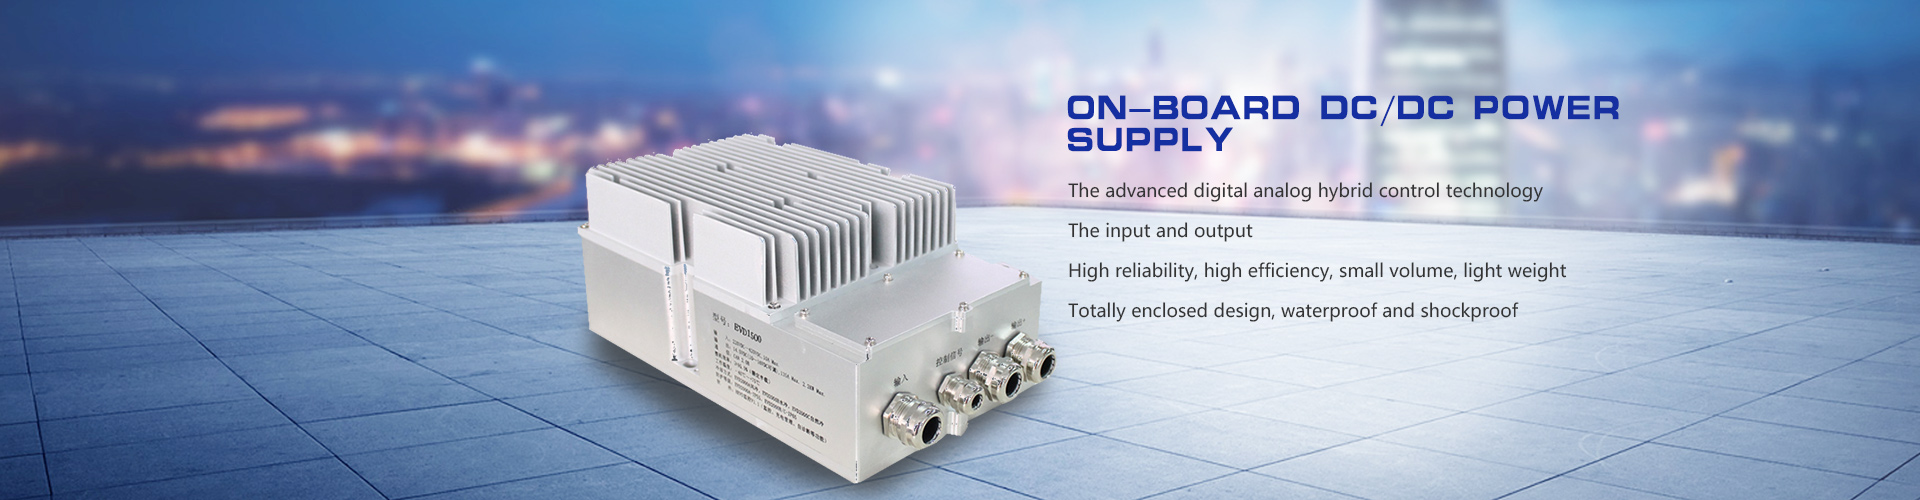 On-board DC/DC power supply